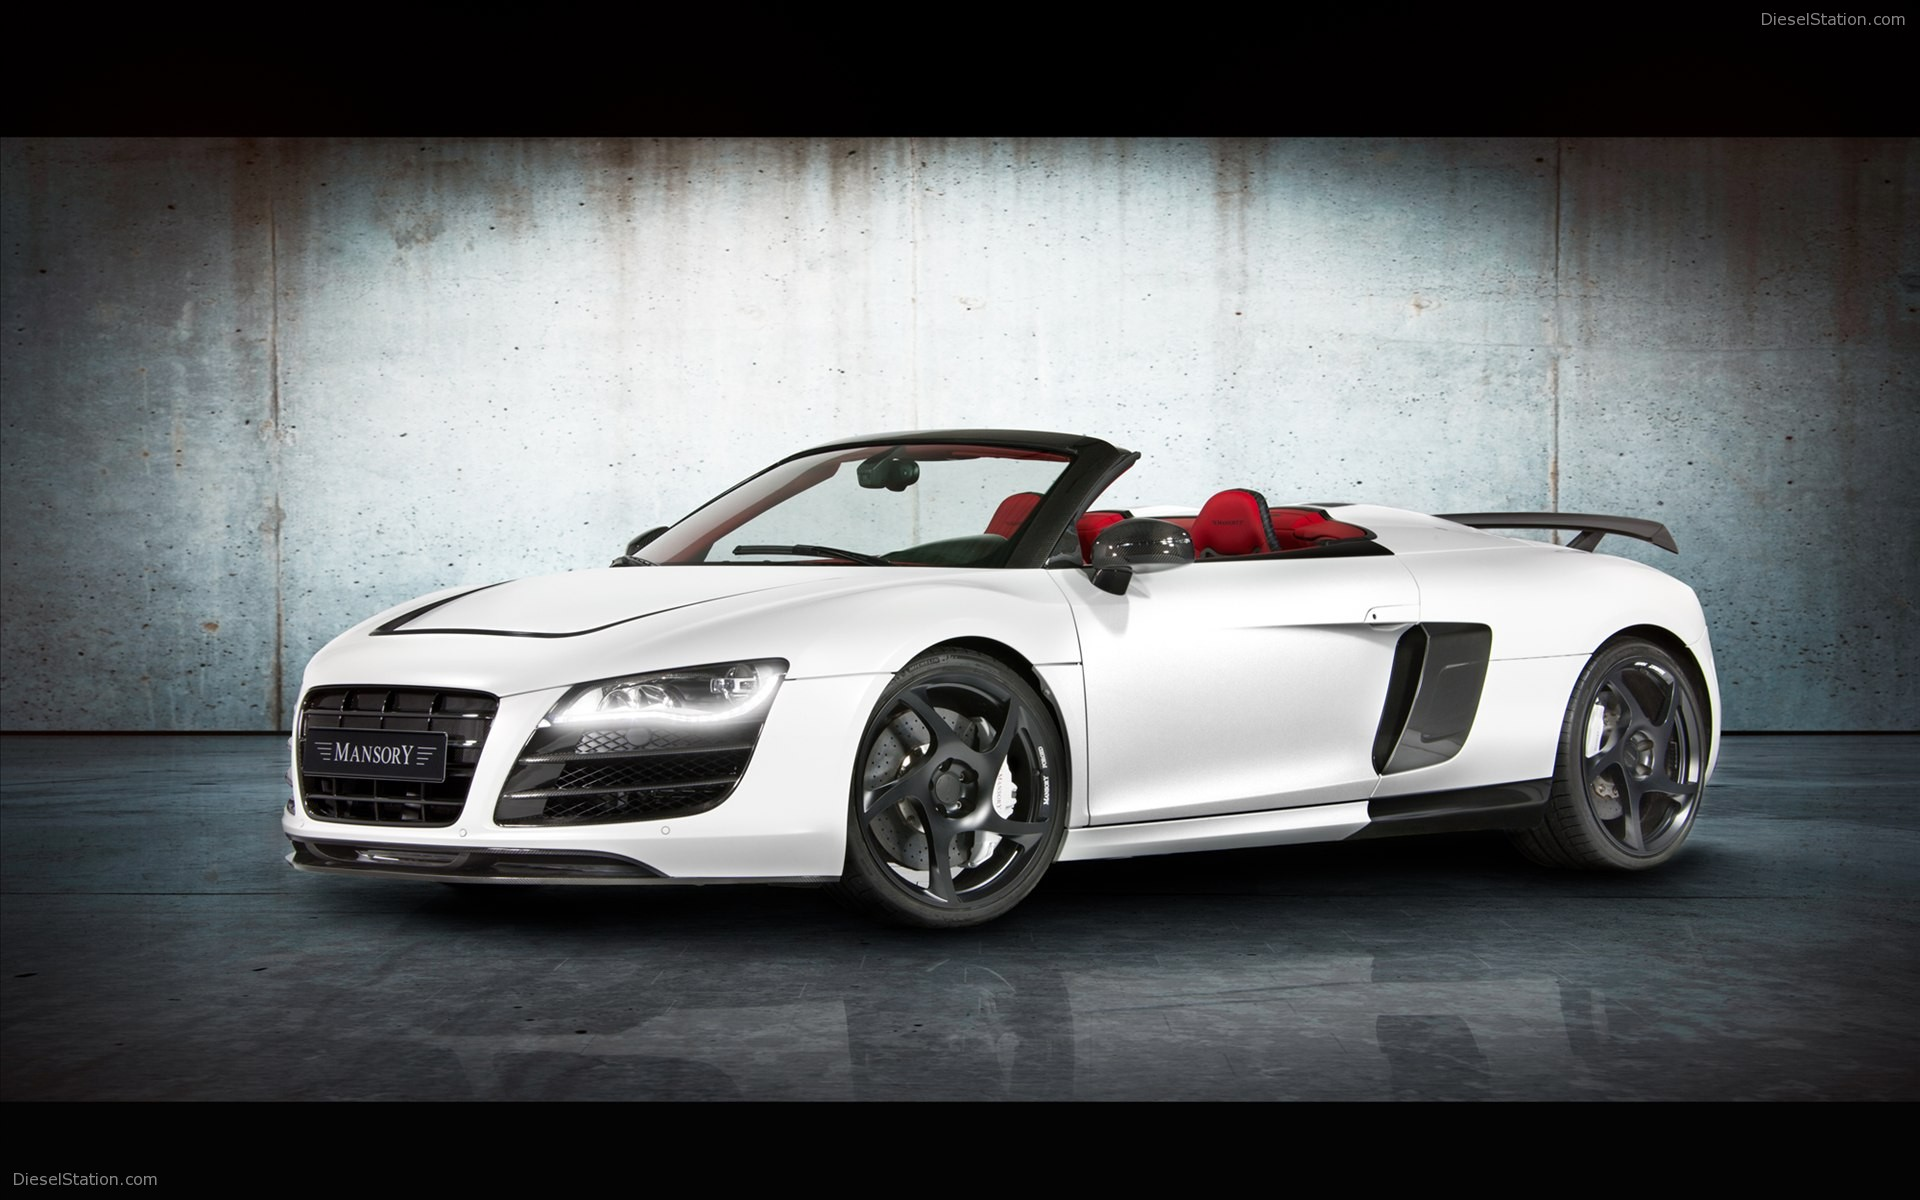 Mansory Audi R8 Spyder 2011 Widescreen Exotic Car Wallpapers 08 1920x1200